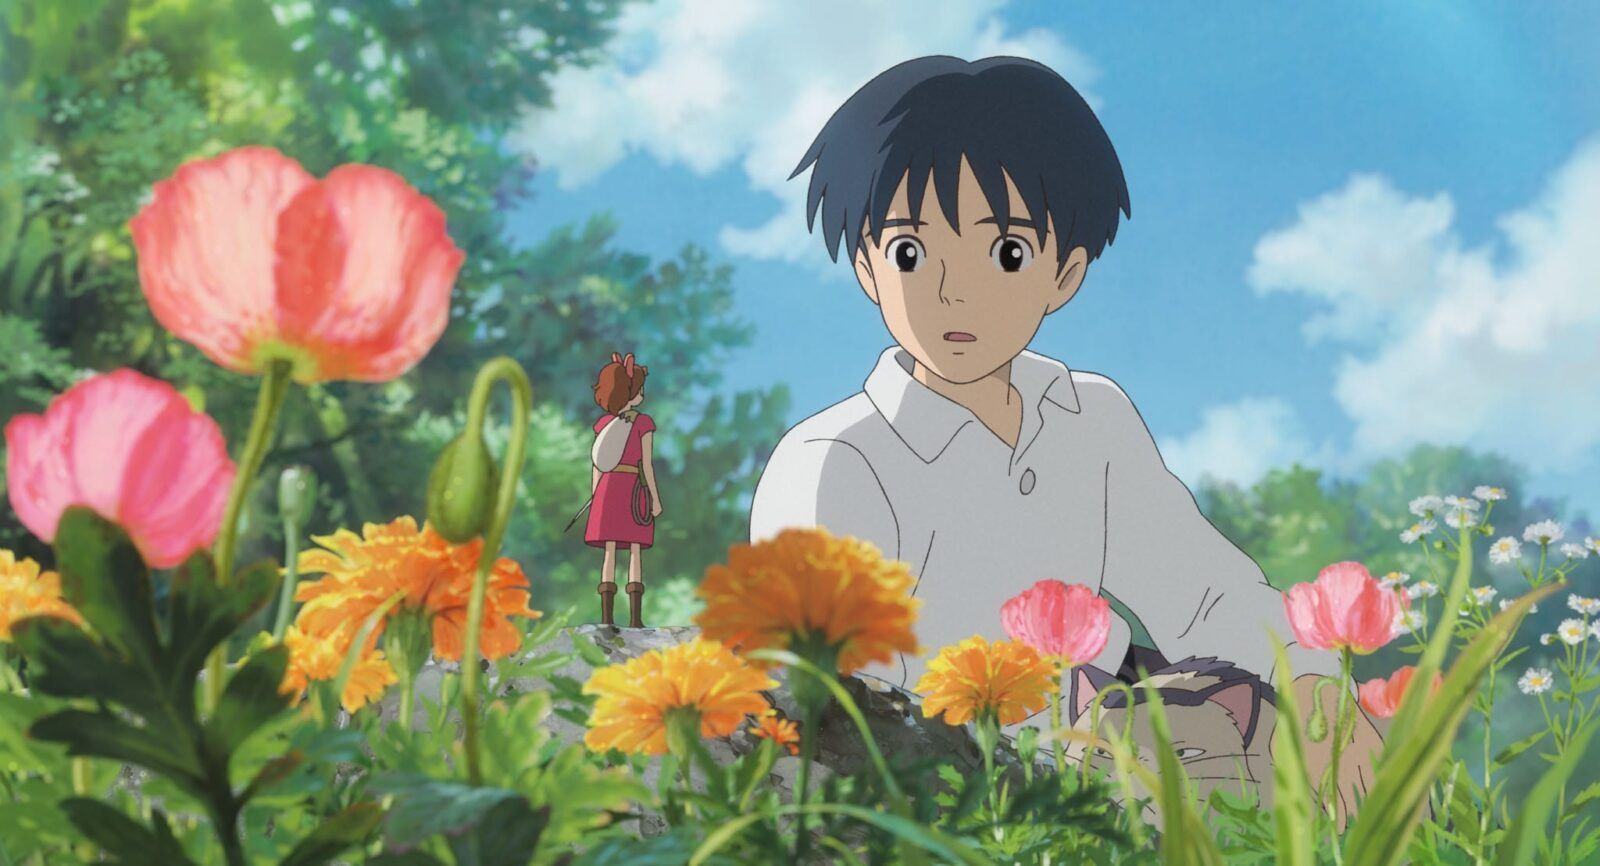 Japon anime filmleri The Secret World of Arrietty